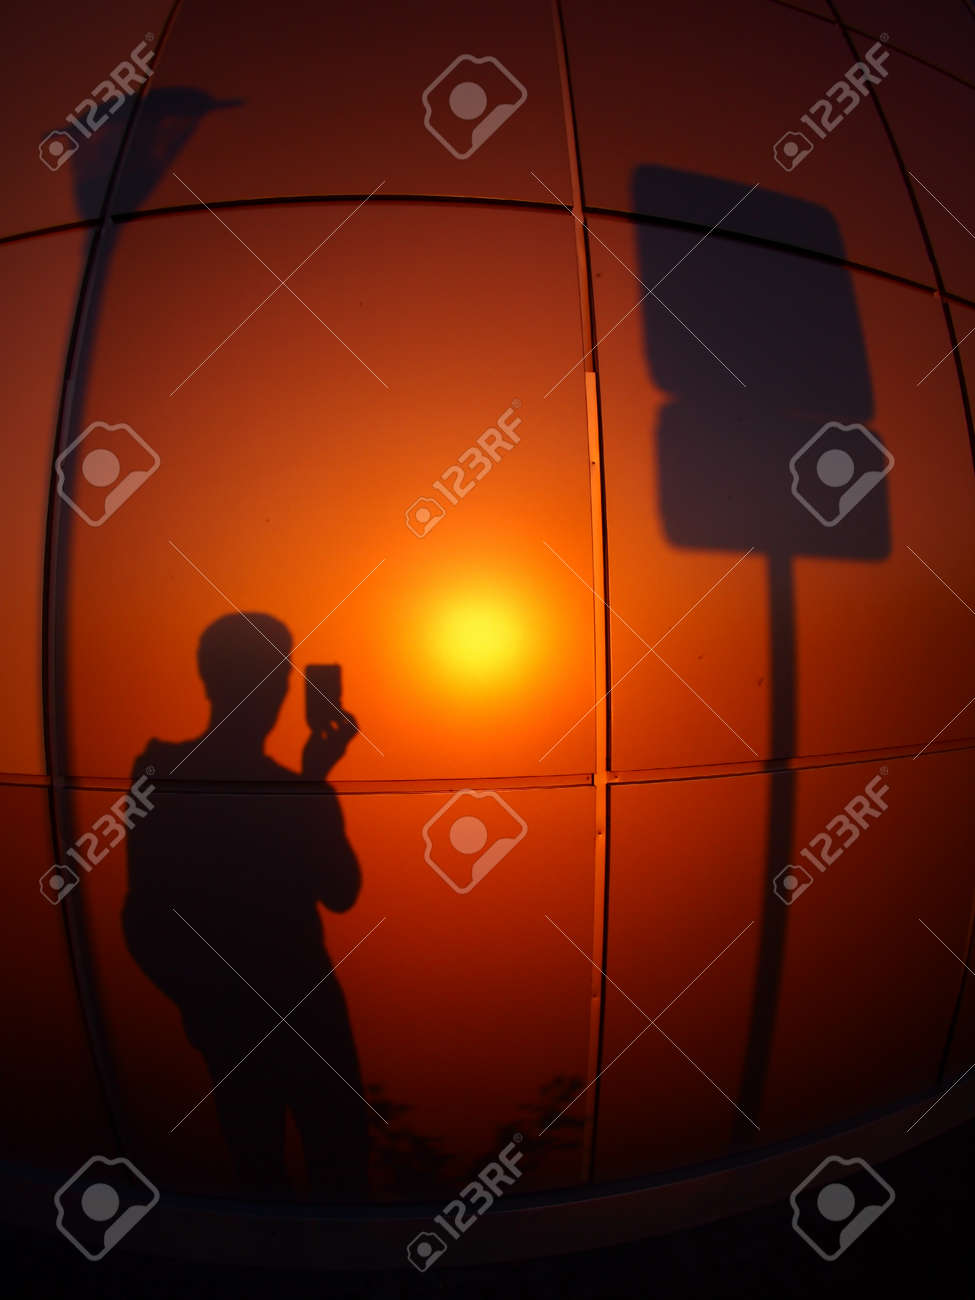 The Silhouette Of A Man On Red Orange Wall Who Photographs